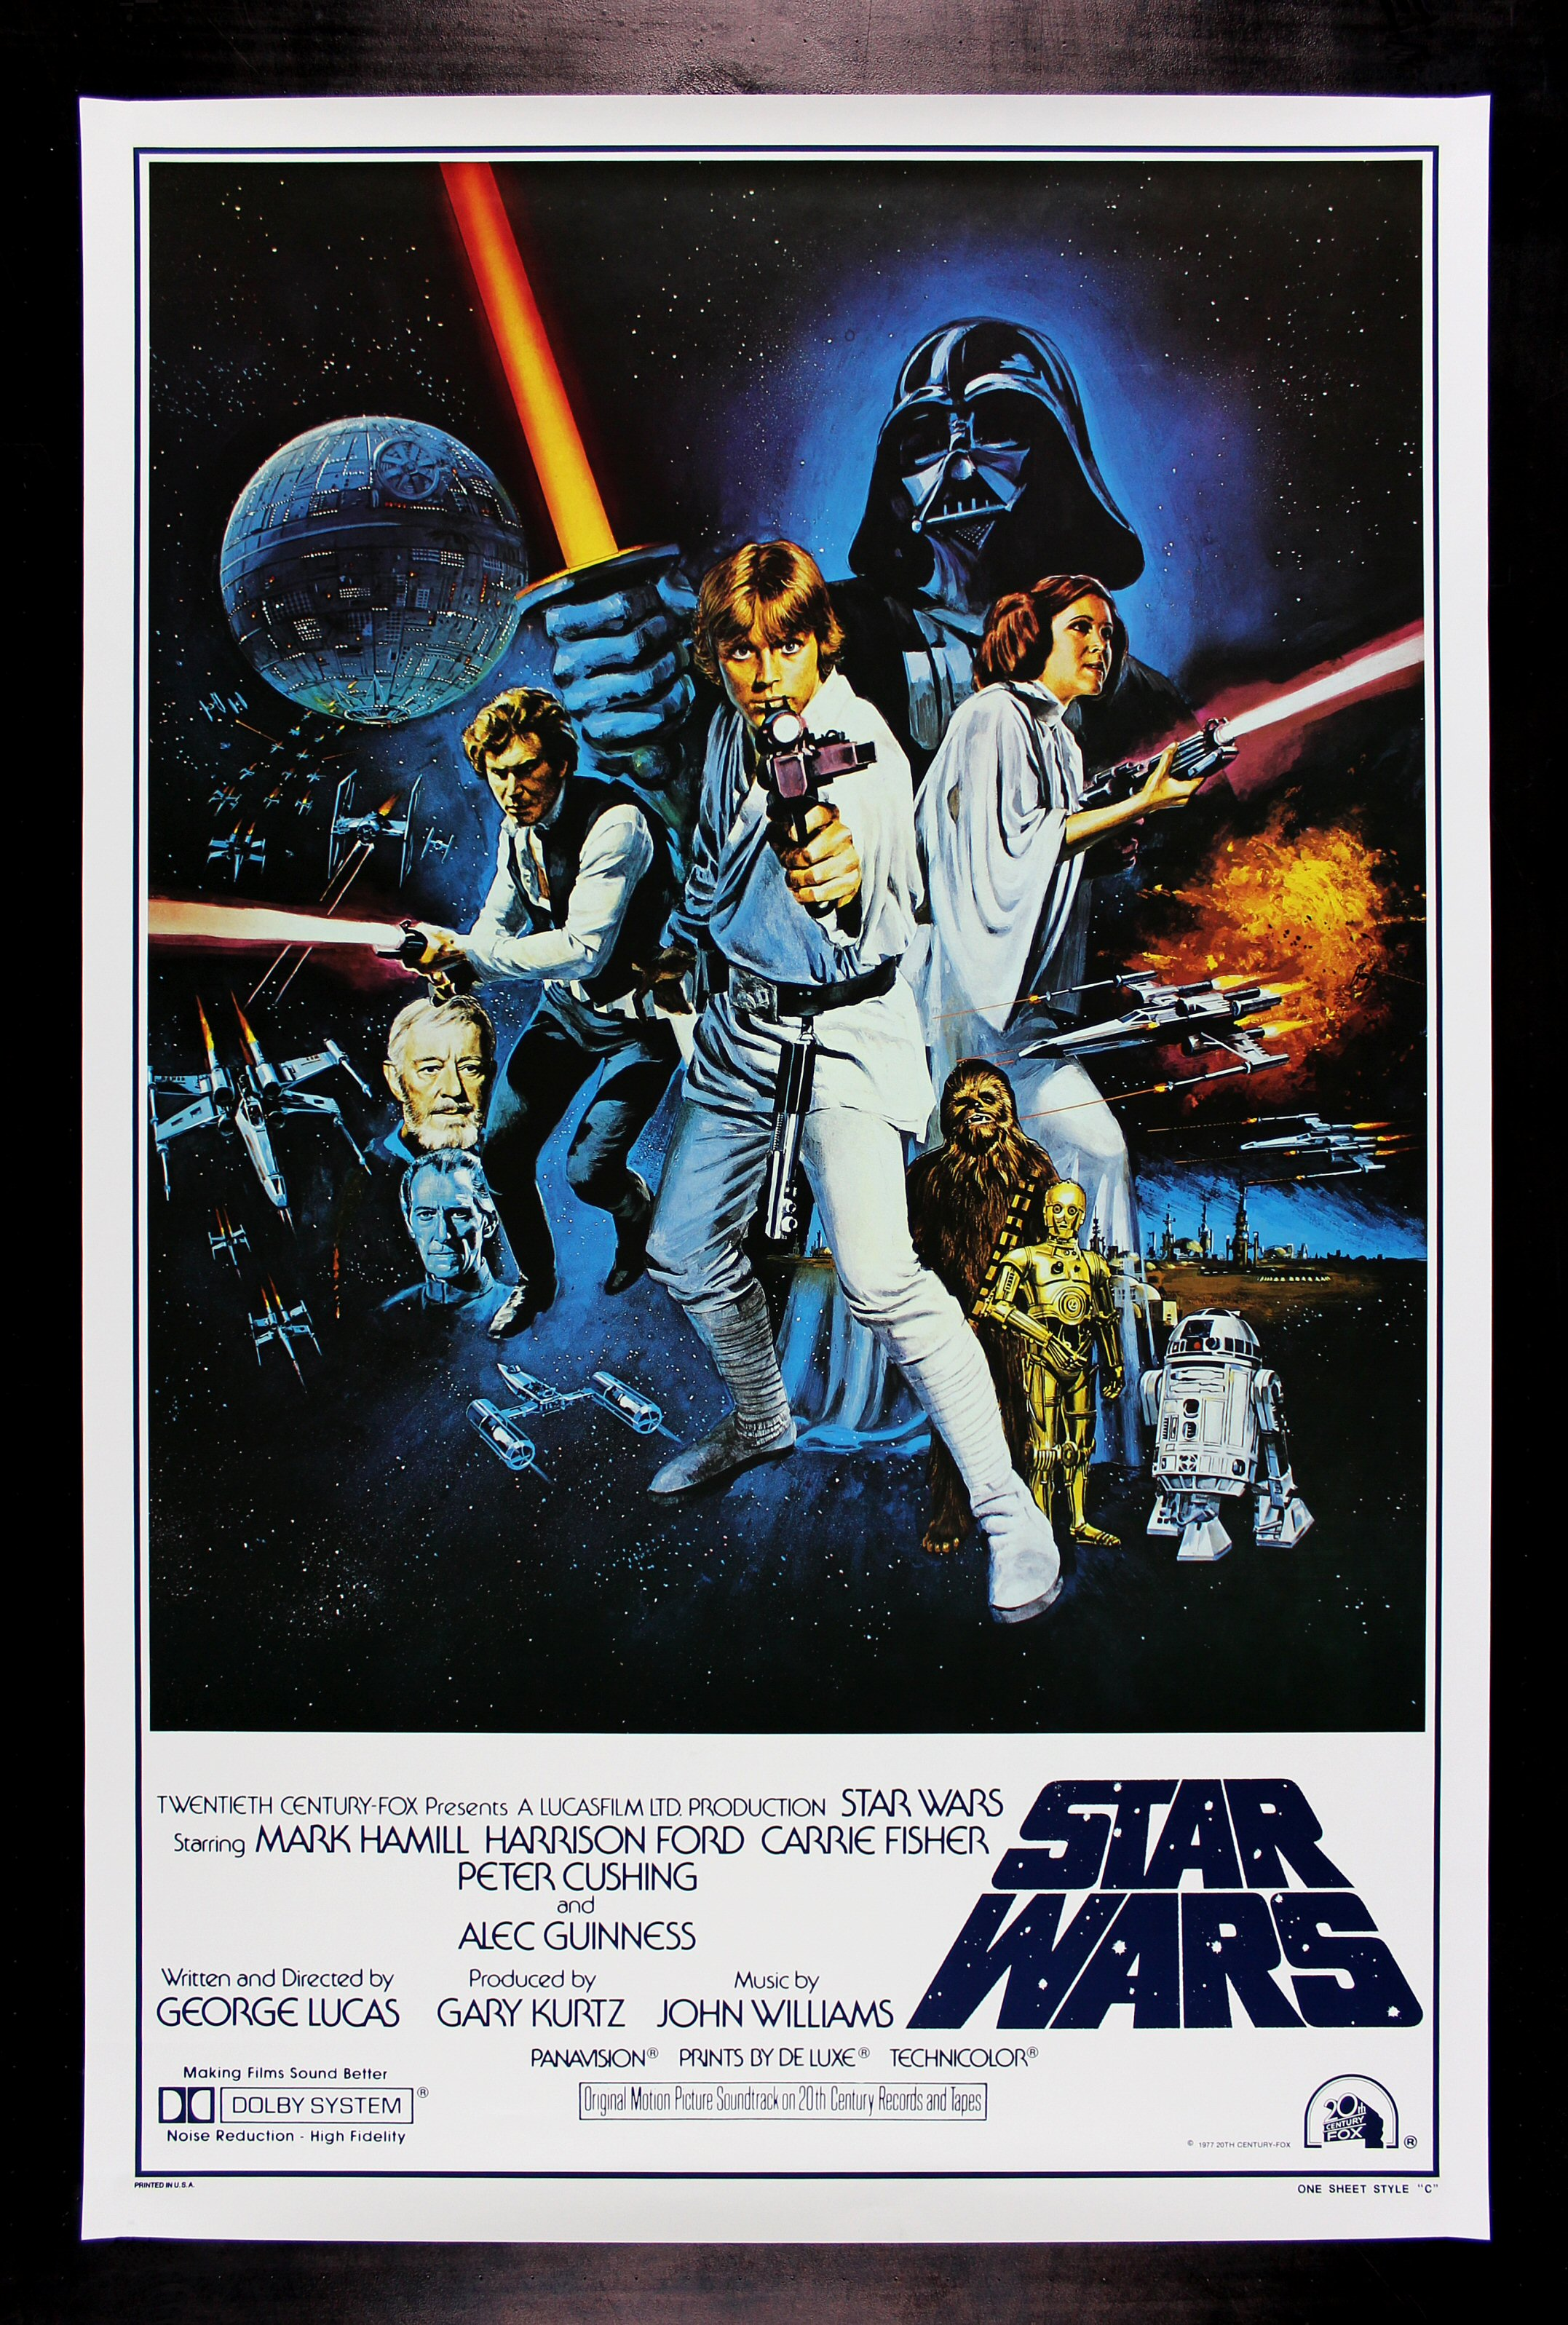 star wars poster good buy ?